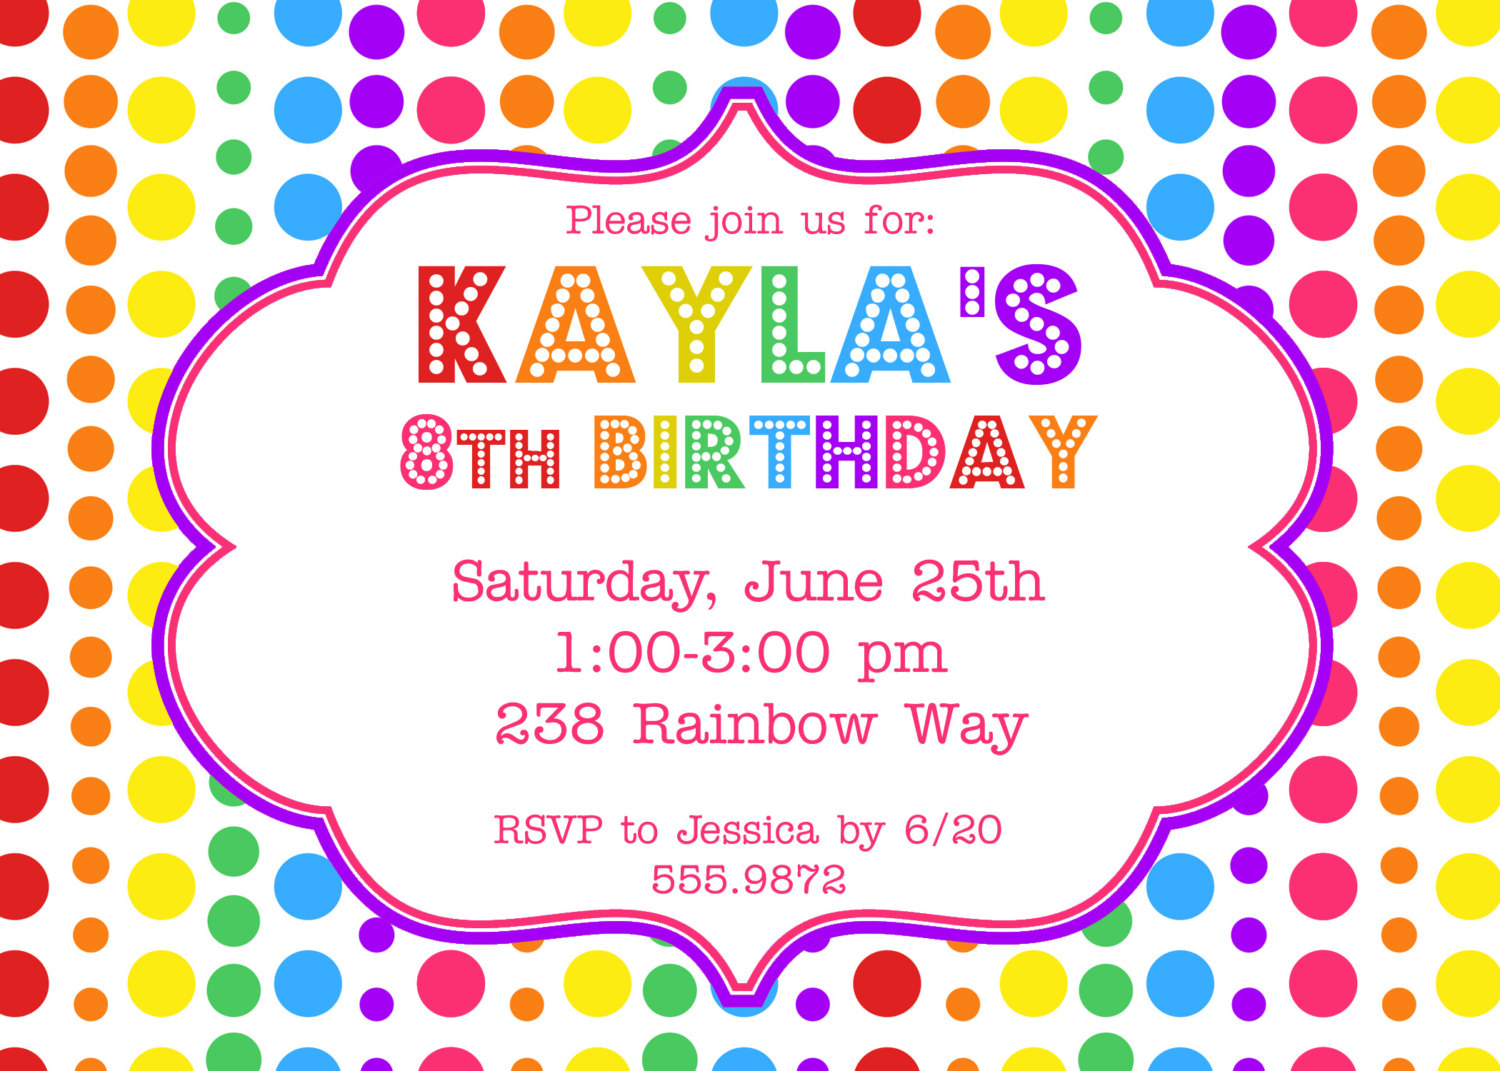 colorful birthday invitations ; birthday-party-invitations-and-get-inspiration-to-create-the-Birthday-invitation-design-of-your-dreams-1